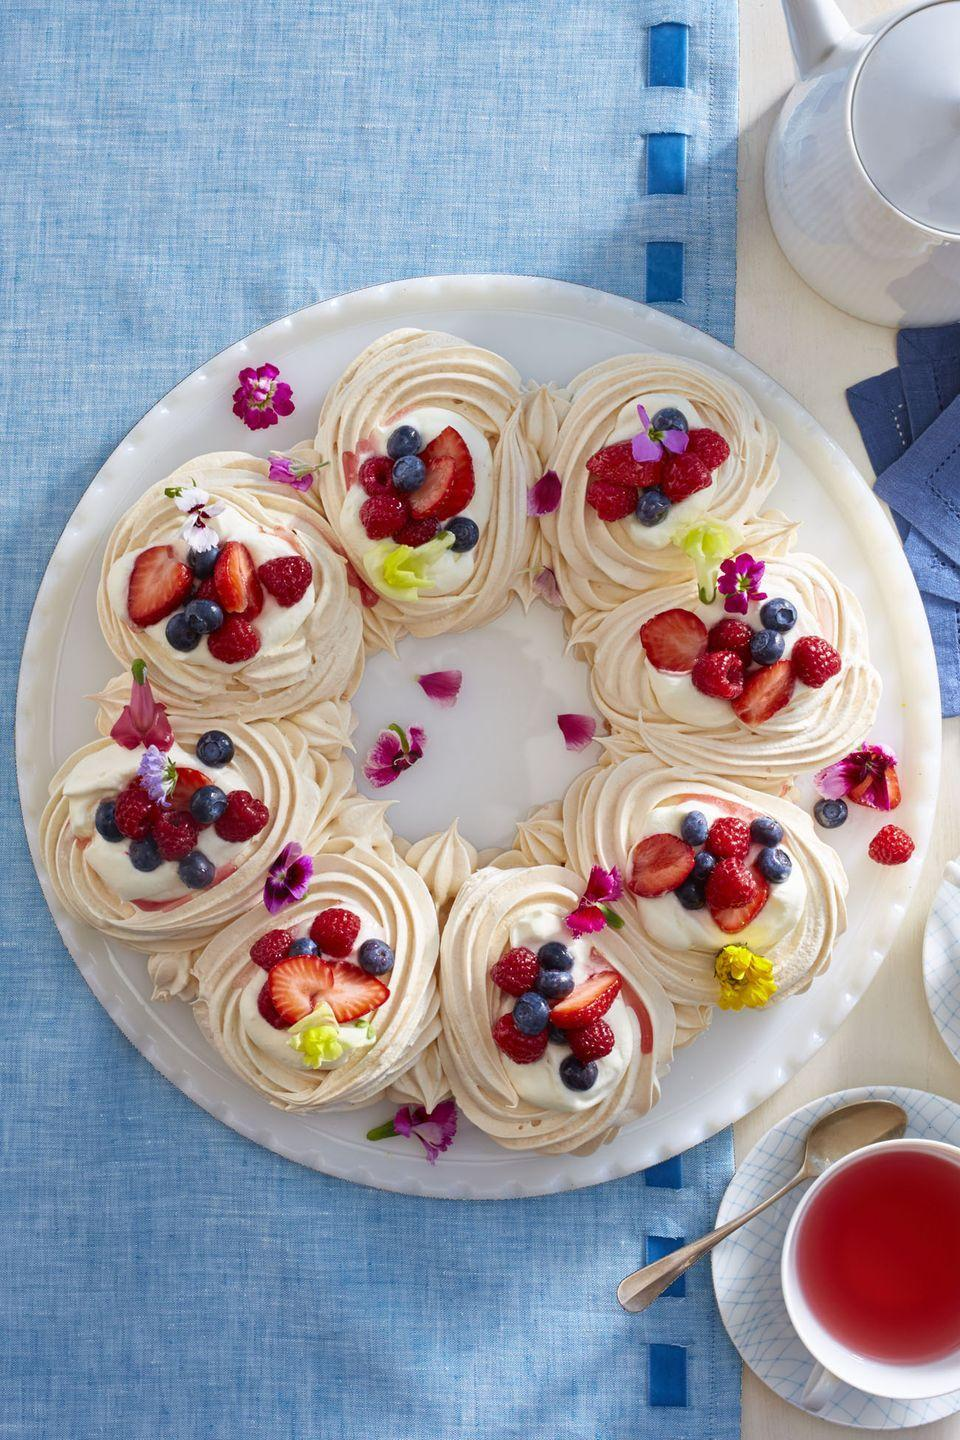 """<p>This recipe calls for edible flowers, but you can switch them out and add more strawberries!</p><p><em><a href=""""https://www.womansday.com/food-recipes/food-drinks/recipes/a58133/meringue-wreath-recipe/"""" rel=""""nofollow noopener"""" target=""""_blank"""" data-ylk=""""slk:Get the recipe for Meringue Wreath."""" class=""""link rapid-noclick-resp"""">Get the recipe for Meringue Wreath.</a></em></p>"""